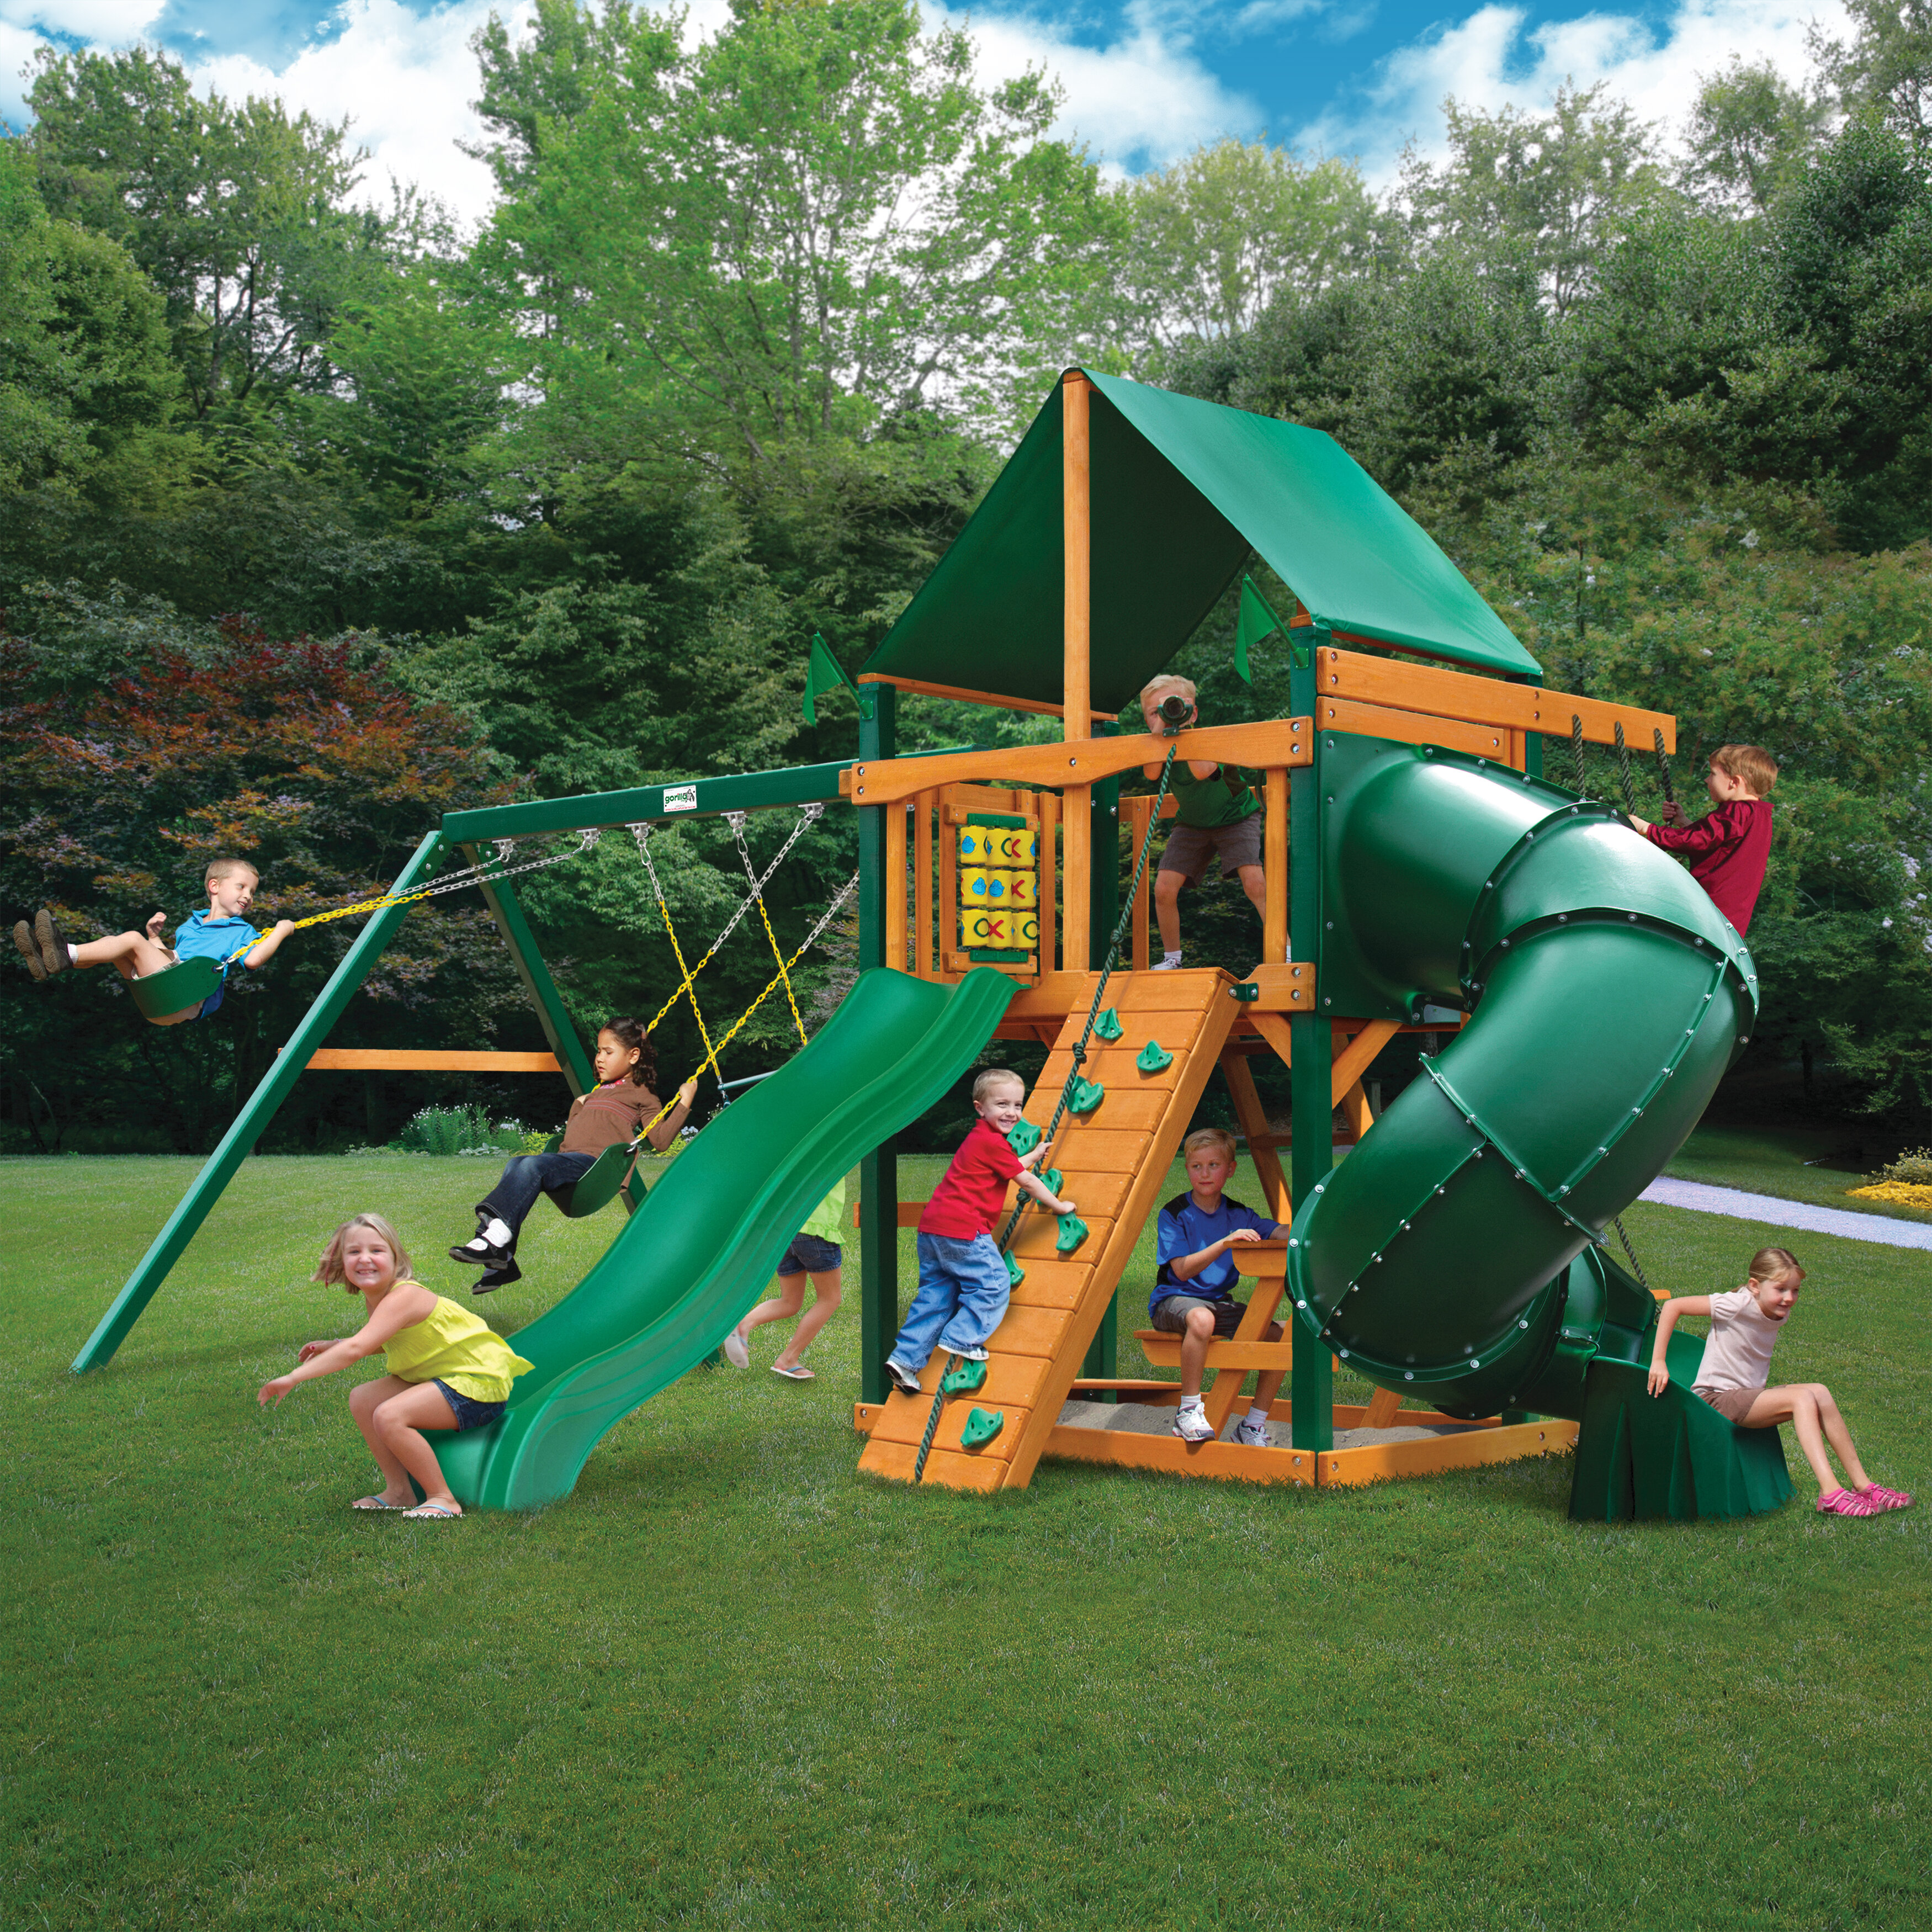 Gorilla Playsets Mountainer Swing Set with Green Vinyl Canopy u0026 Reviews | Wayfair & Gorilla Playsets Mountainer Swing Set with Green Vinyl Canopy ...